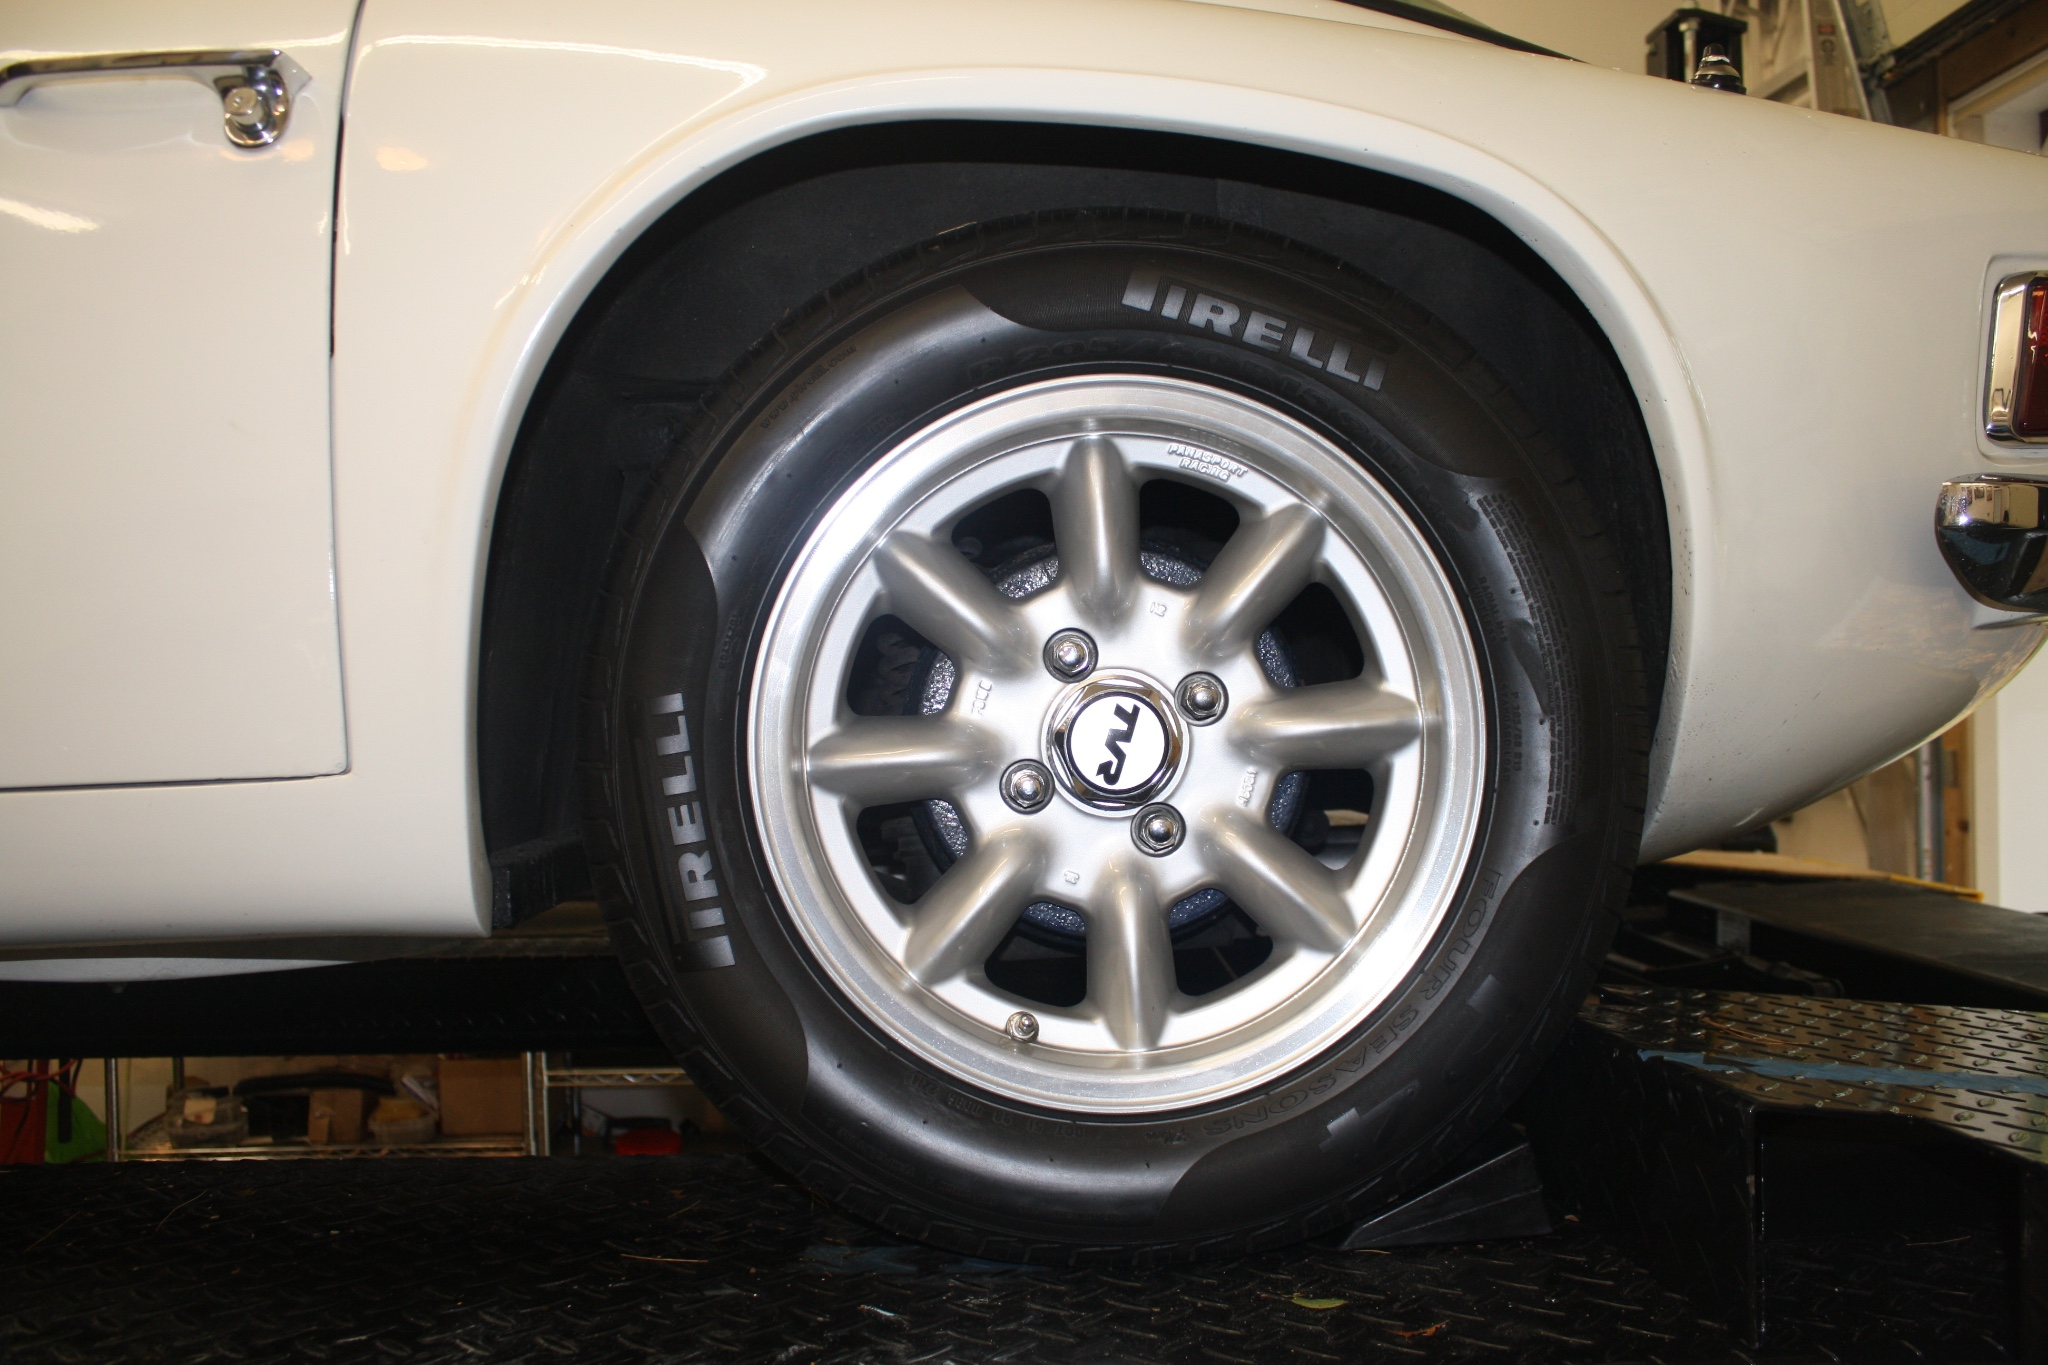 This TVR 2500M has been fitted with 15″ Panasport wheels but comes with the original 14″ Gemini-style wheels also.